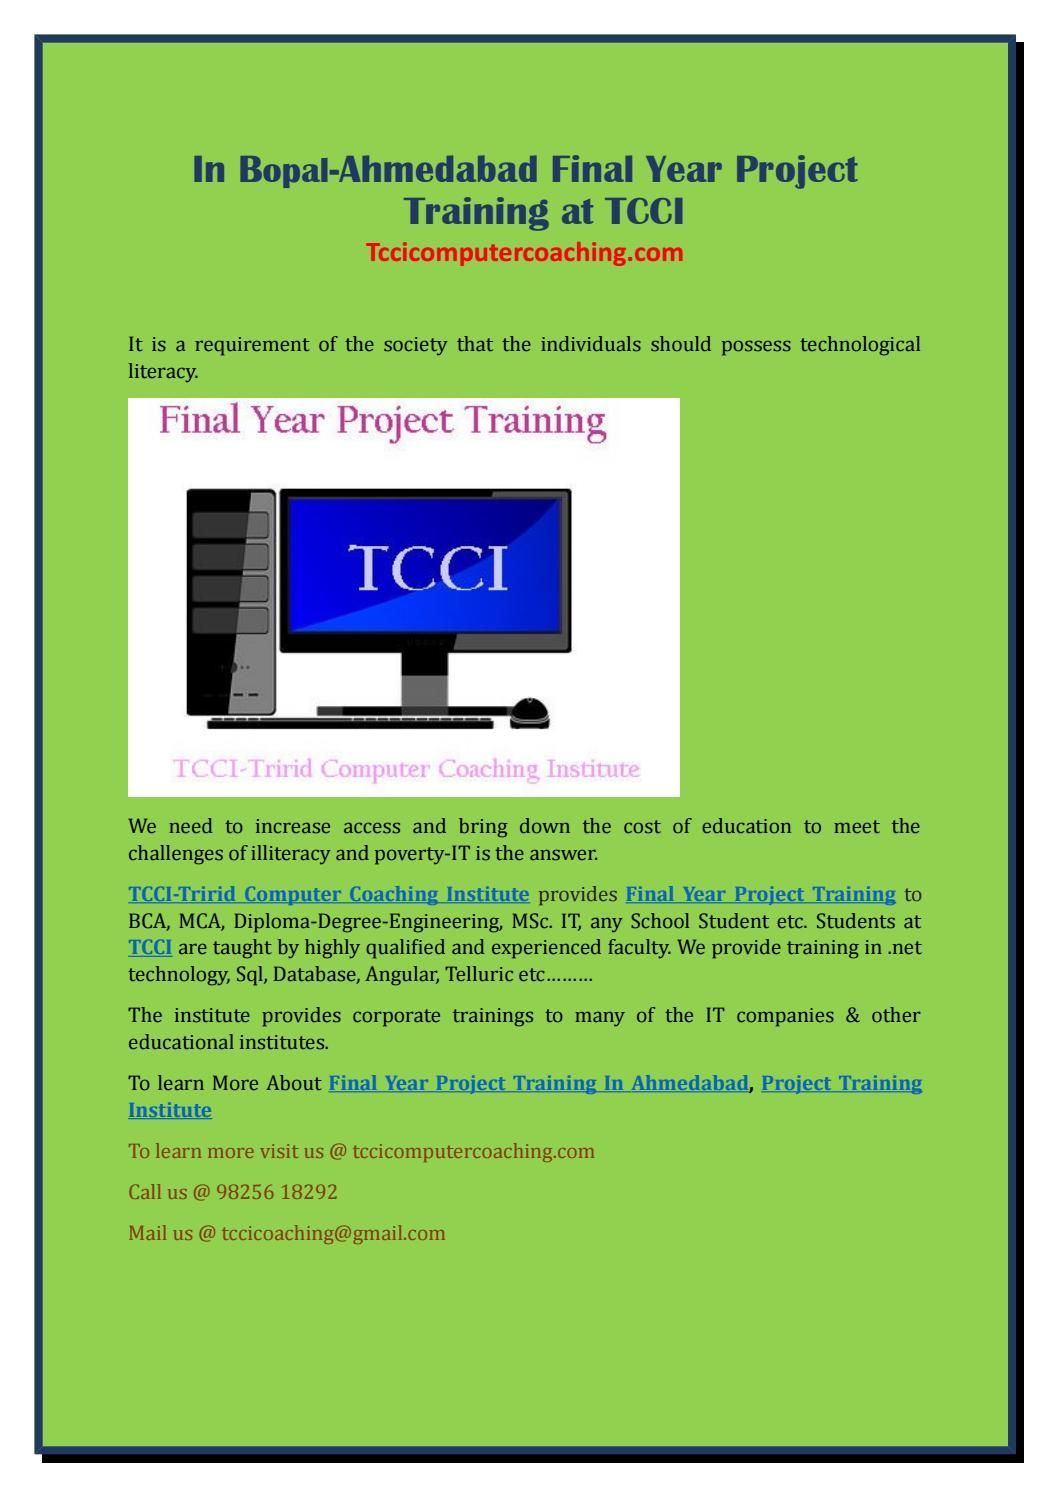 In bopal ahmedabad final year project training at tcci